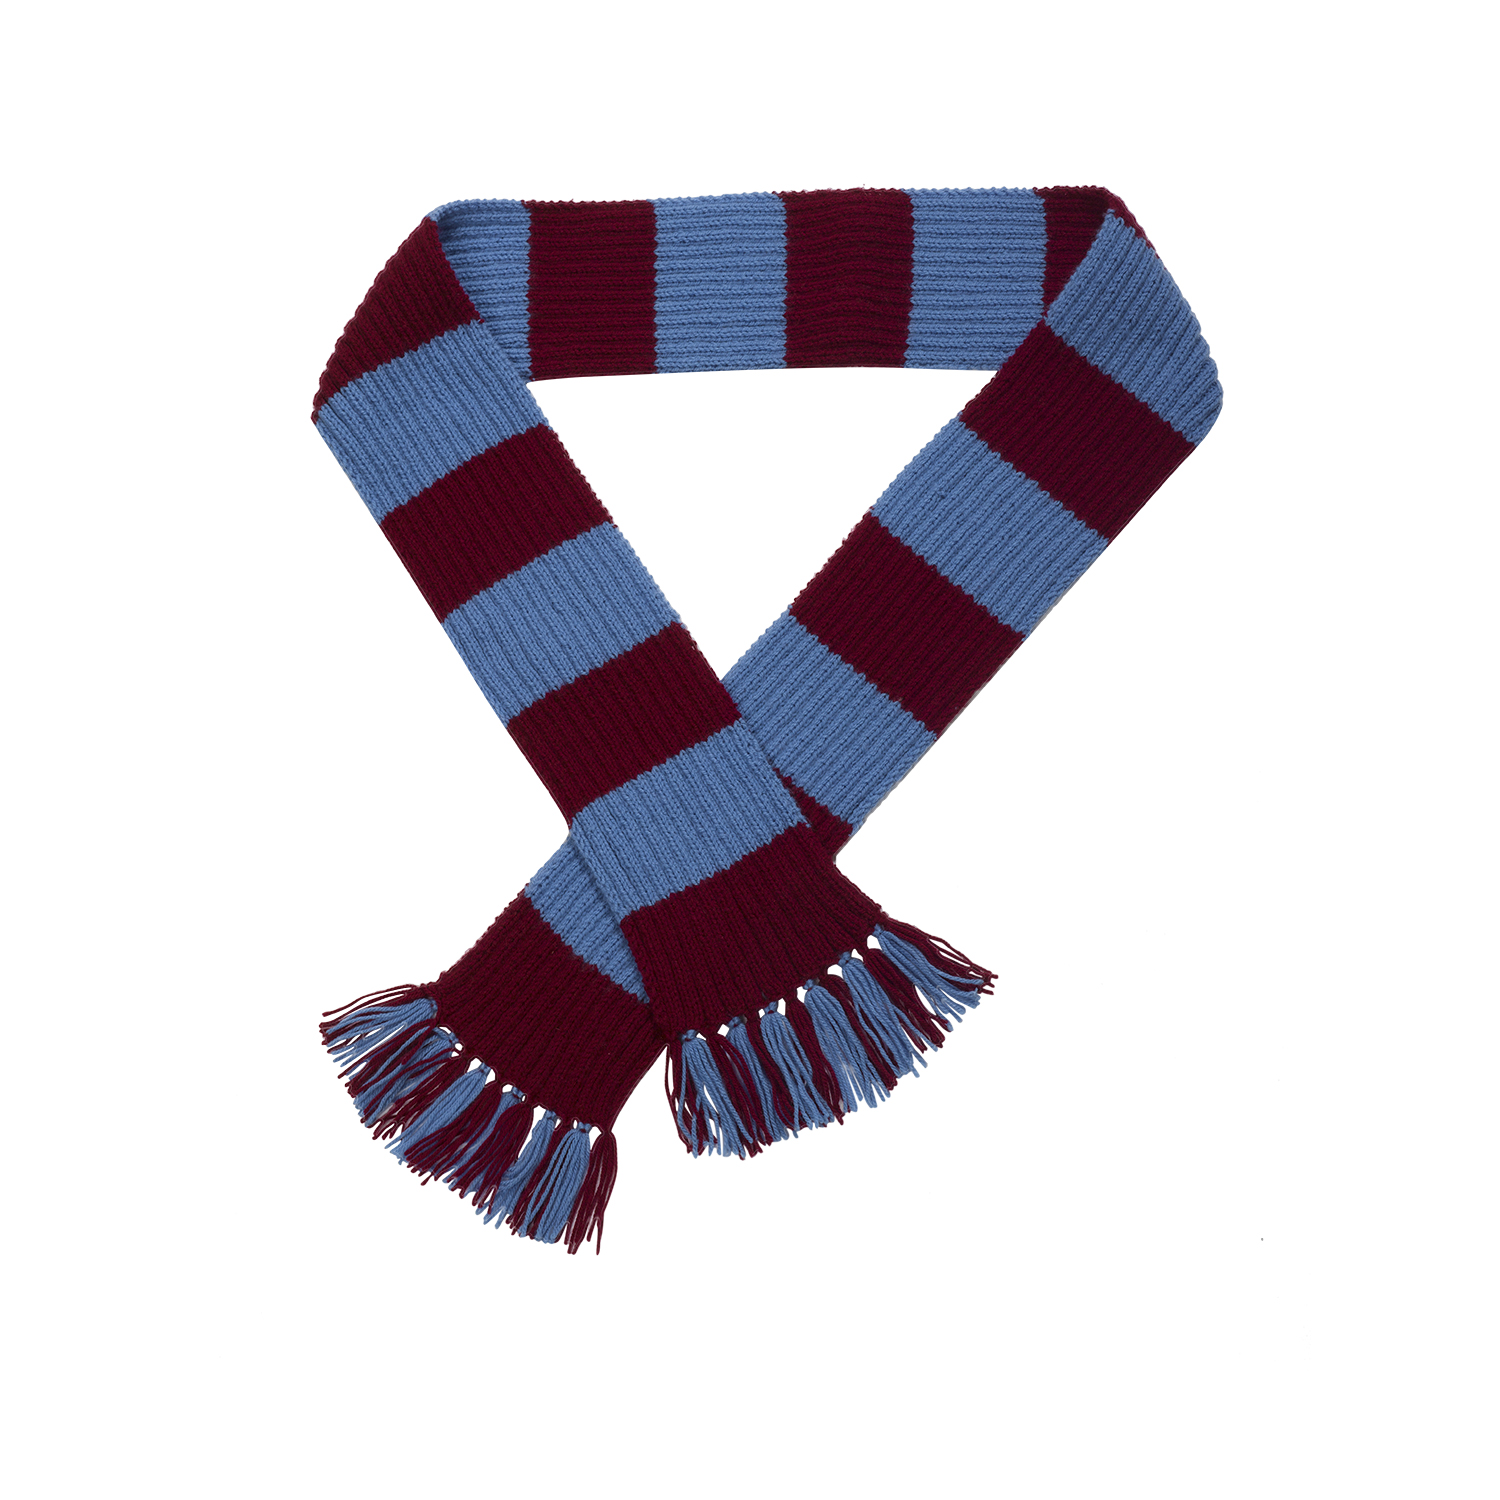 Knitting Pattern For Football Scarf : Craft Hobby Knitted Scarf Kit Football & Rugby DK Double ...